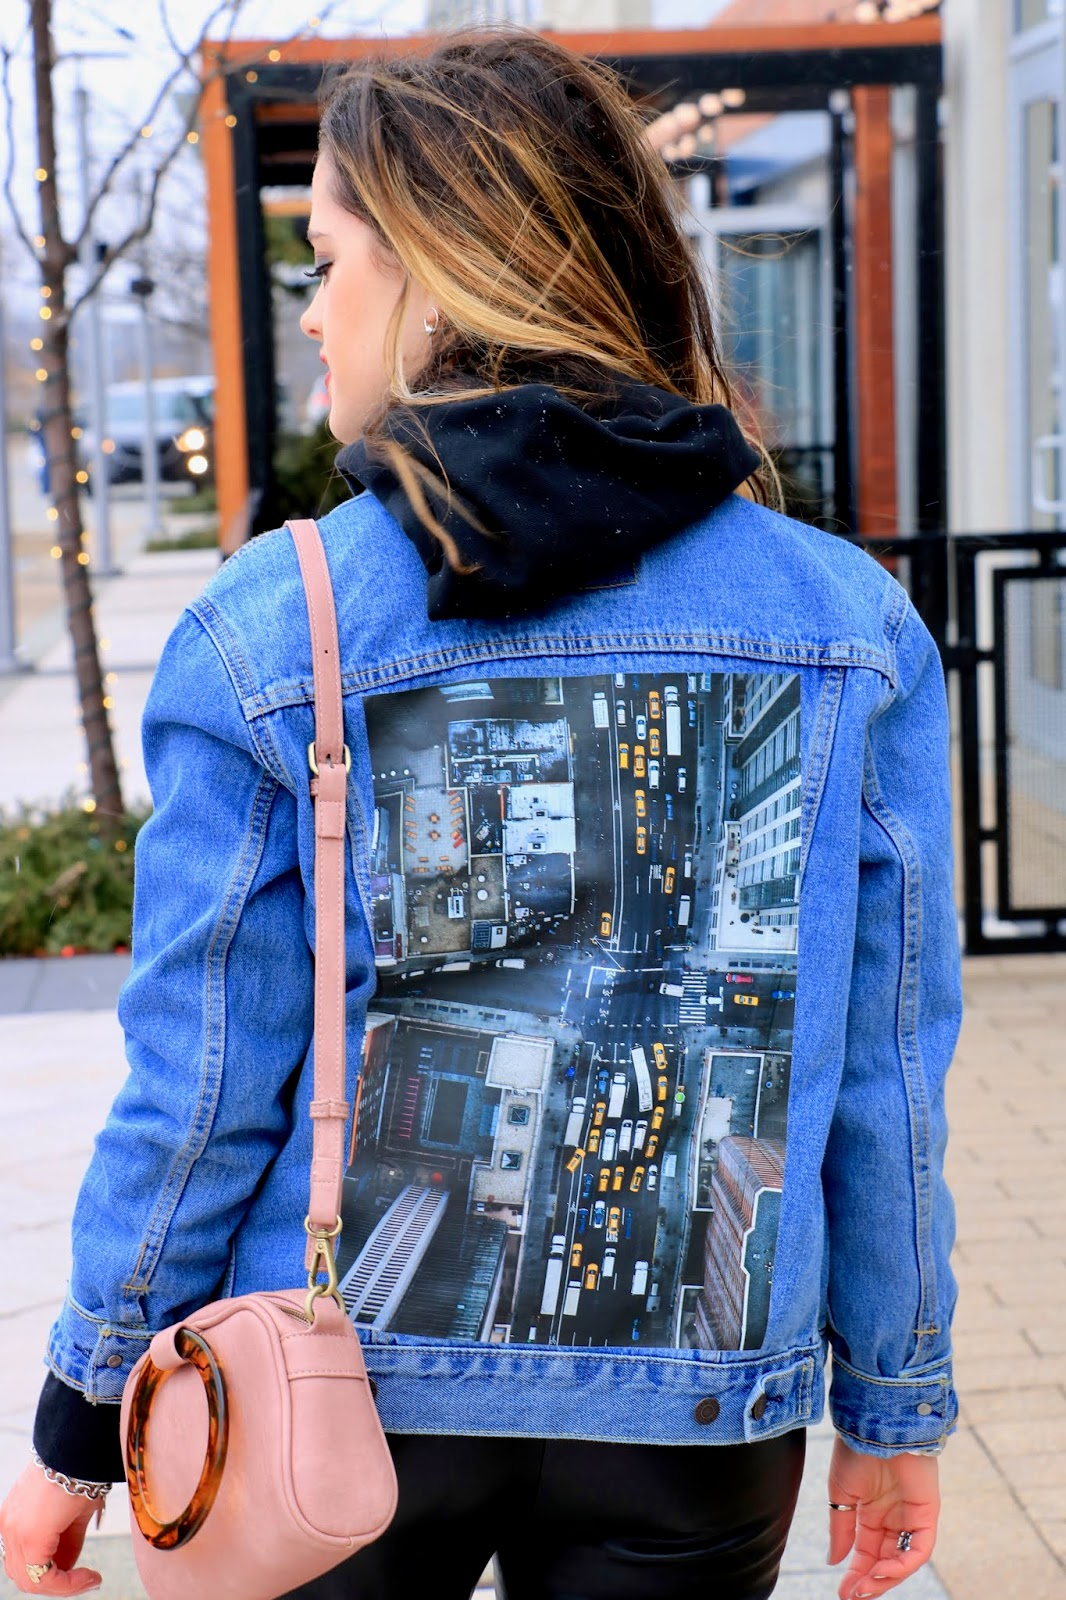 Nyc fashion blogger Kathleen Harper's customized Levi's denim jacket